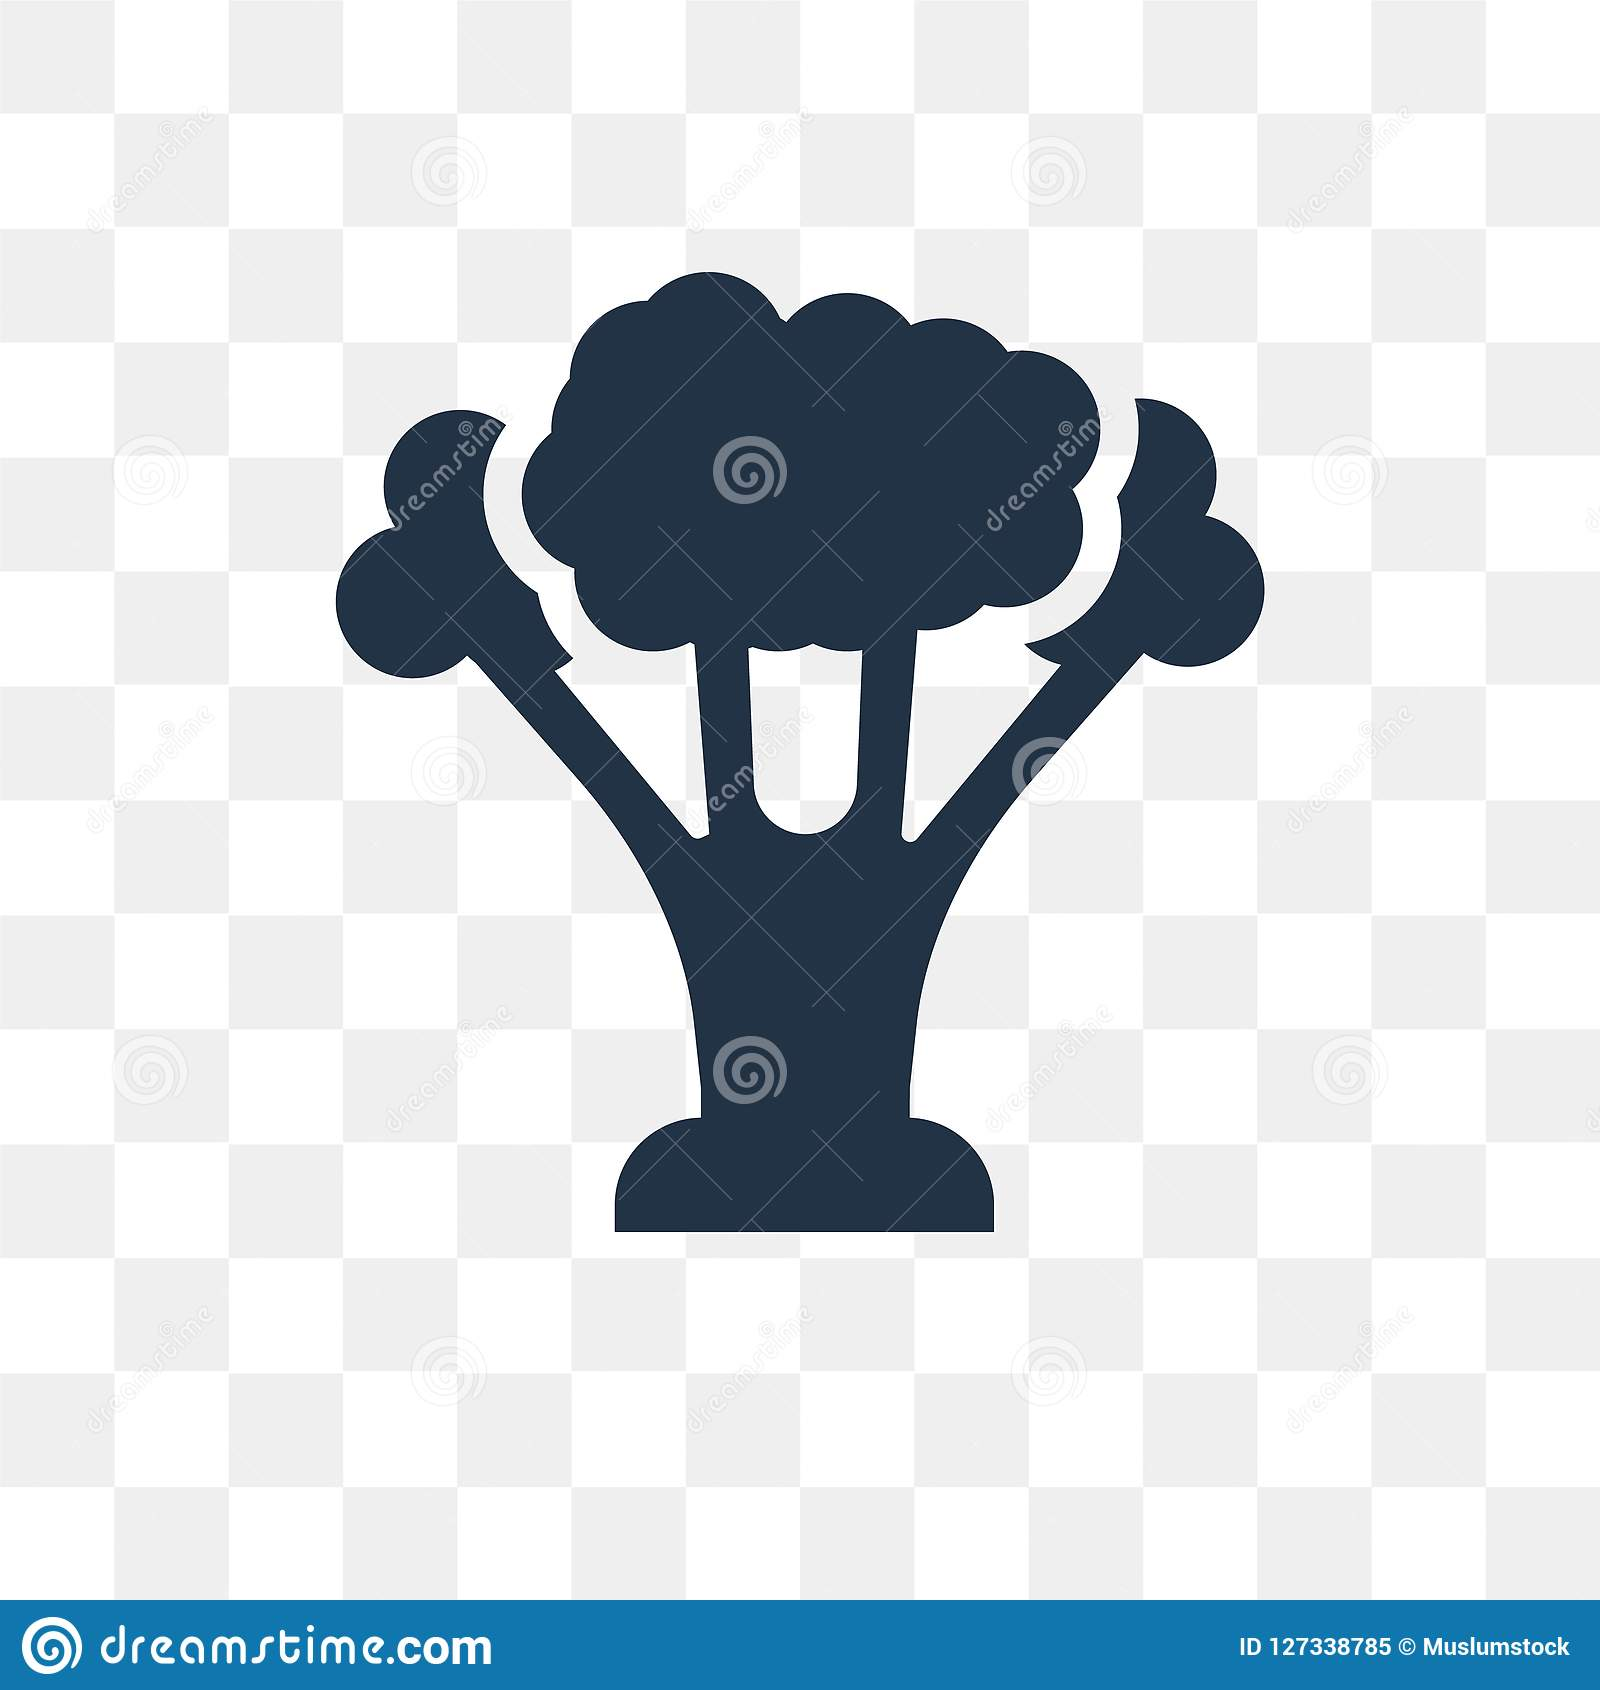 broccoli vector icon isolated on transparent background broccoli transparency concept can be used web and mobile stock vector illustration of icon brocolli 127338785 https www dreamstime com broccoli vector icon isolated transparent background broccol transparency concept can be used web mobile image127338785